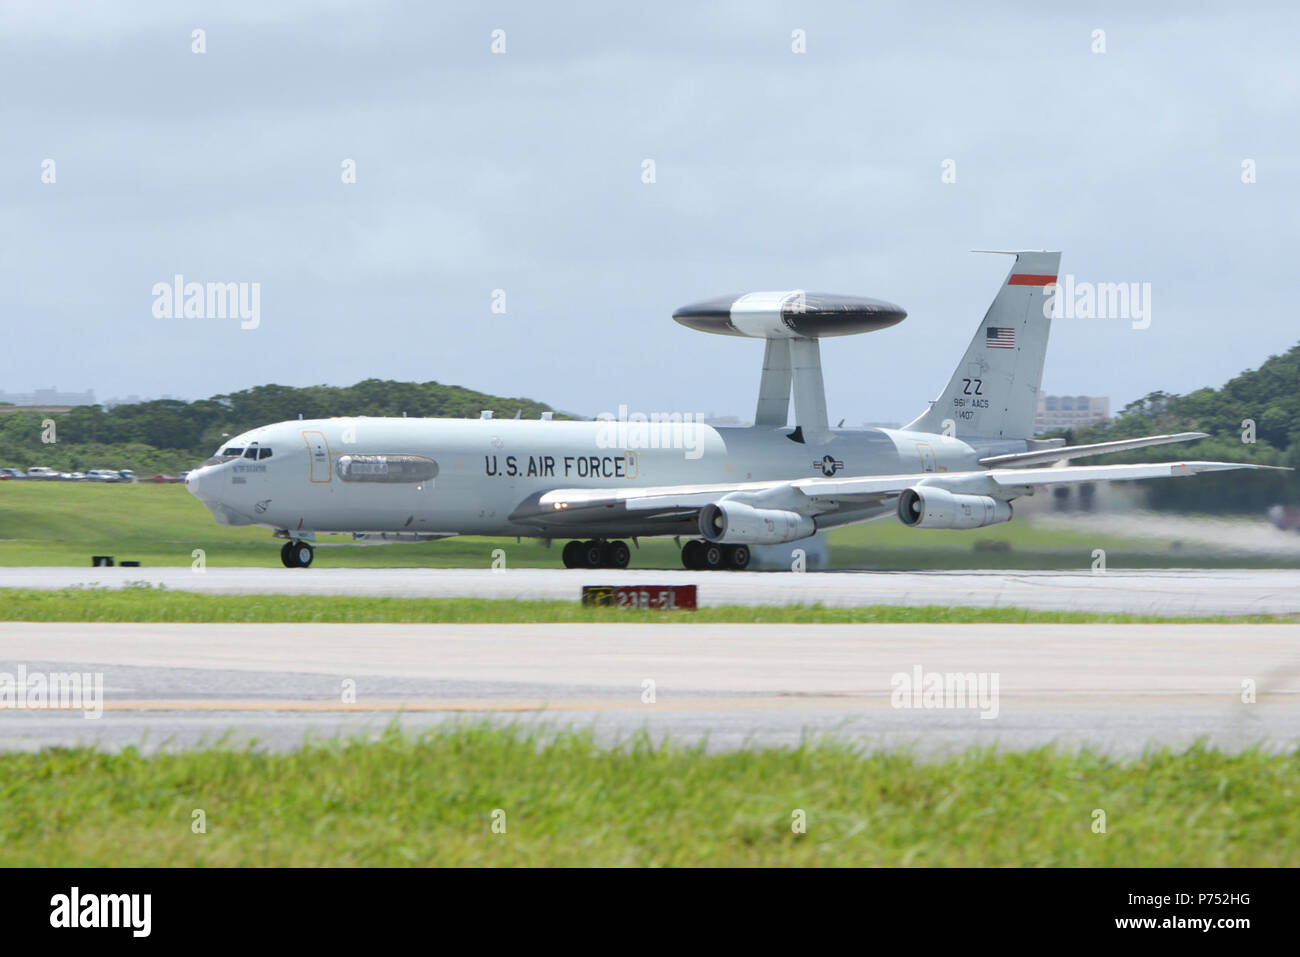 A U S  Air Force E-3 Sentry Airborne Warning and Control